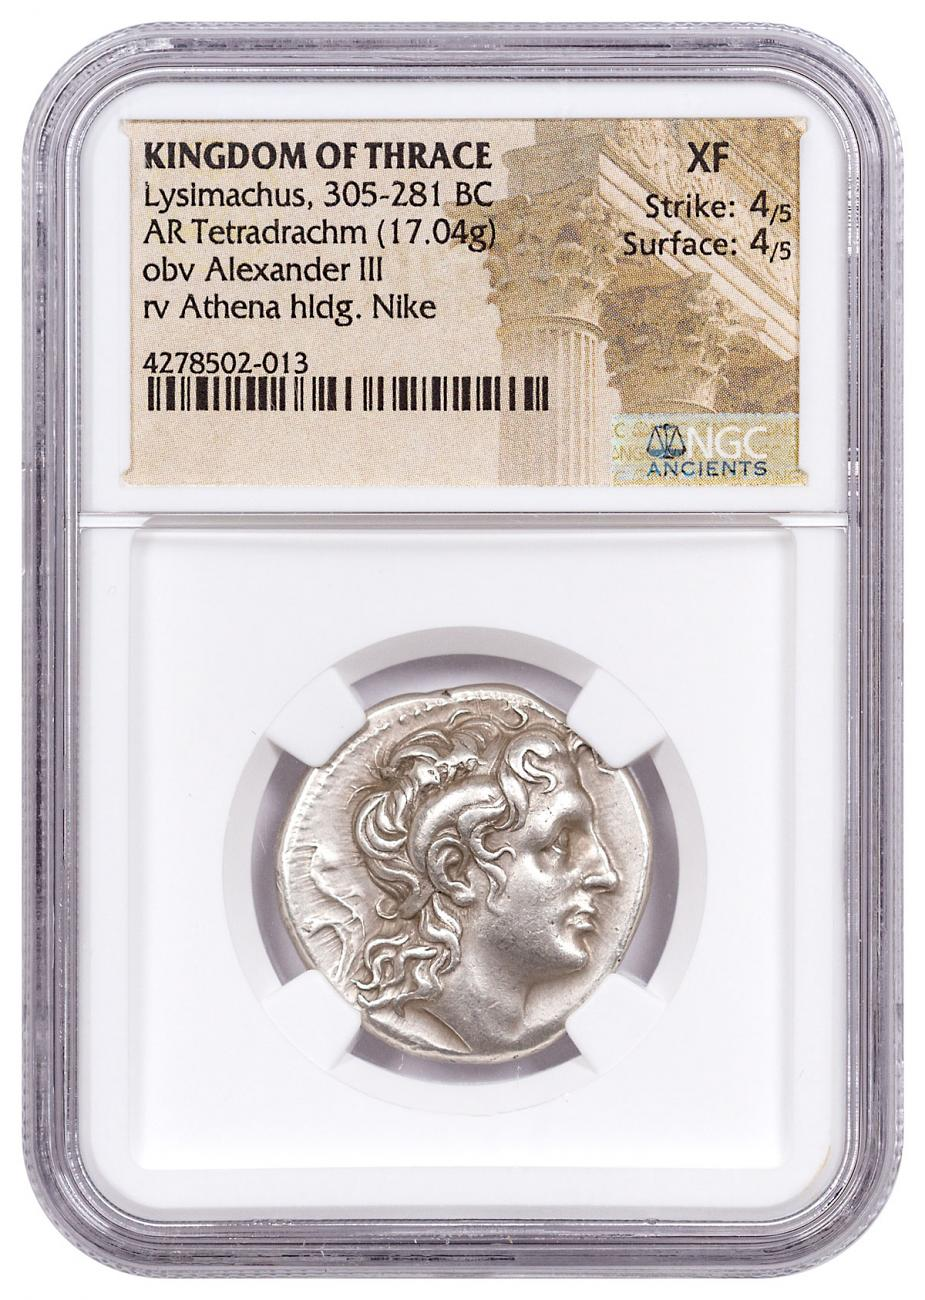 Macedon, Silver Tetradrachm of Lysimachus (305-281 BC) - NGC XF (Strike: 4/5, Surface: 4/5) ARTISTIC PORTRAIT